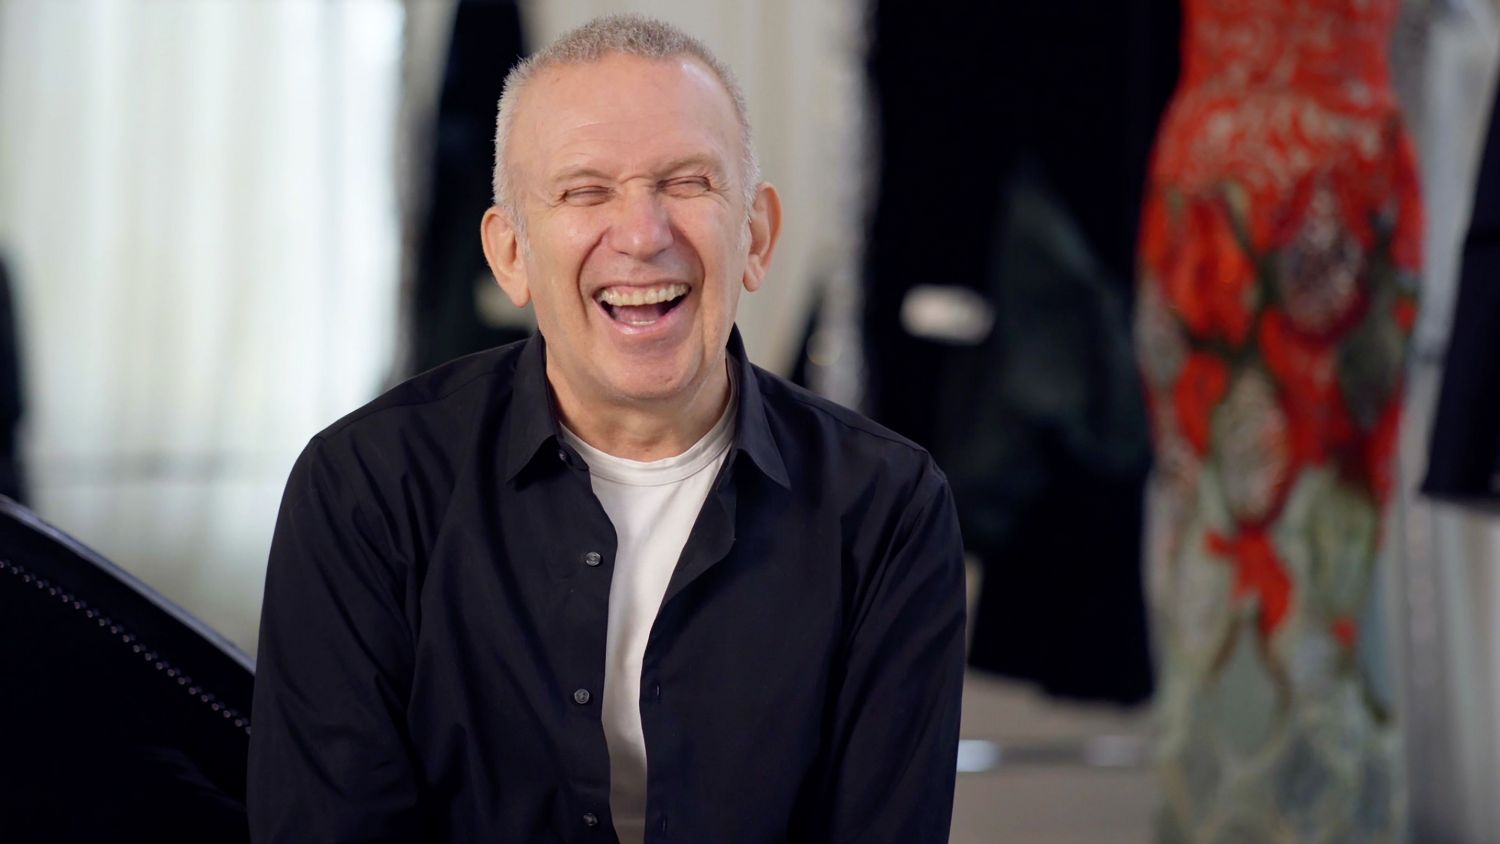 Jean Paul Gaultier in HOUSE OF CARDIN (Blue Finch Film Releasing)